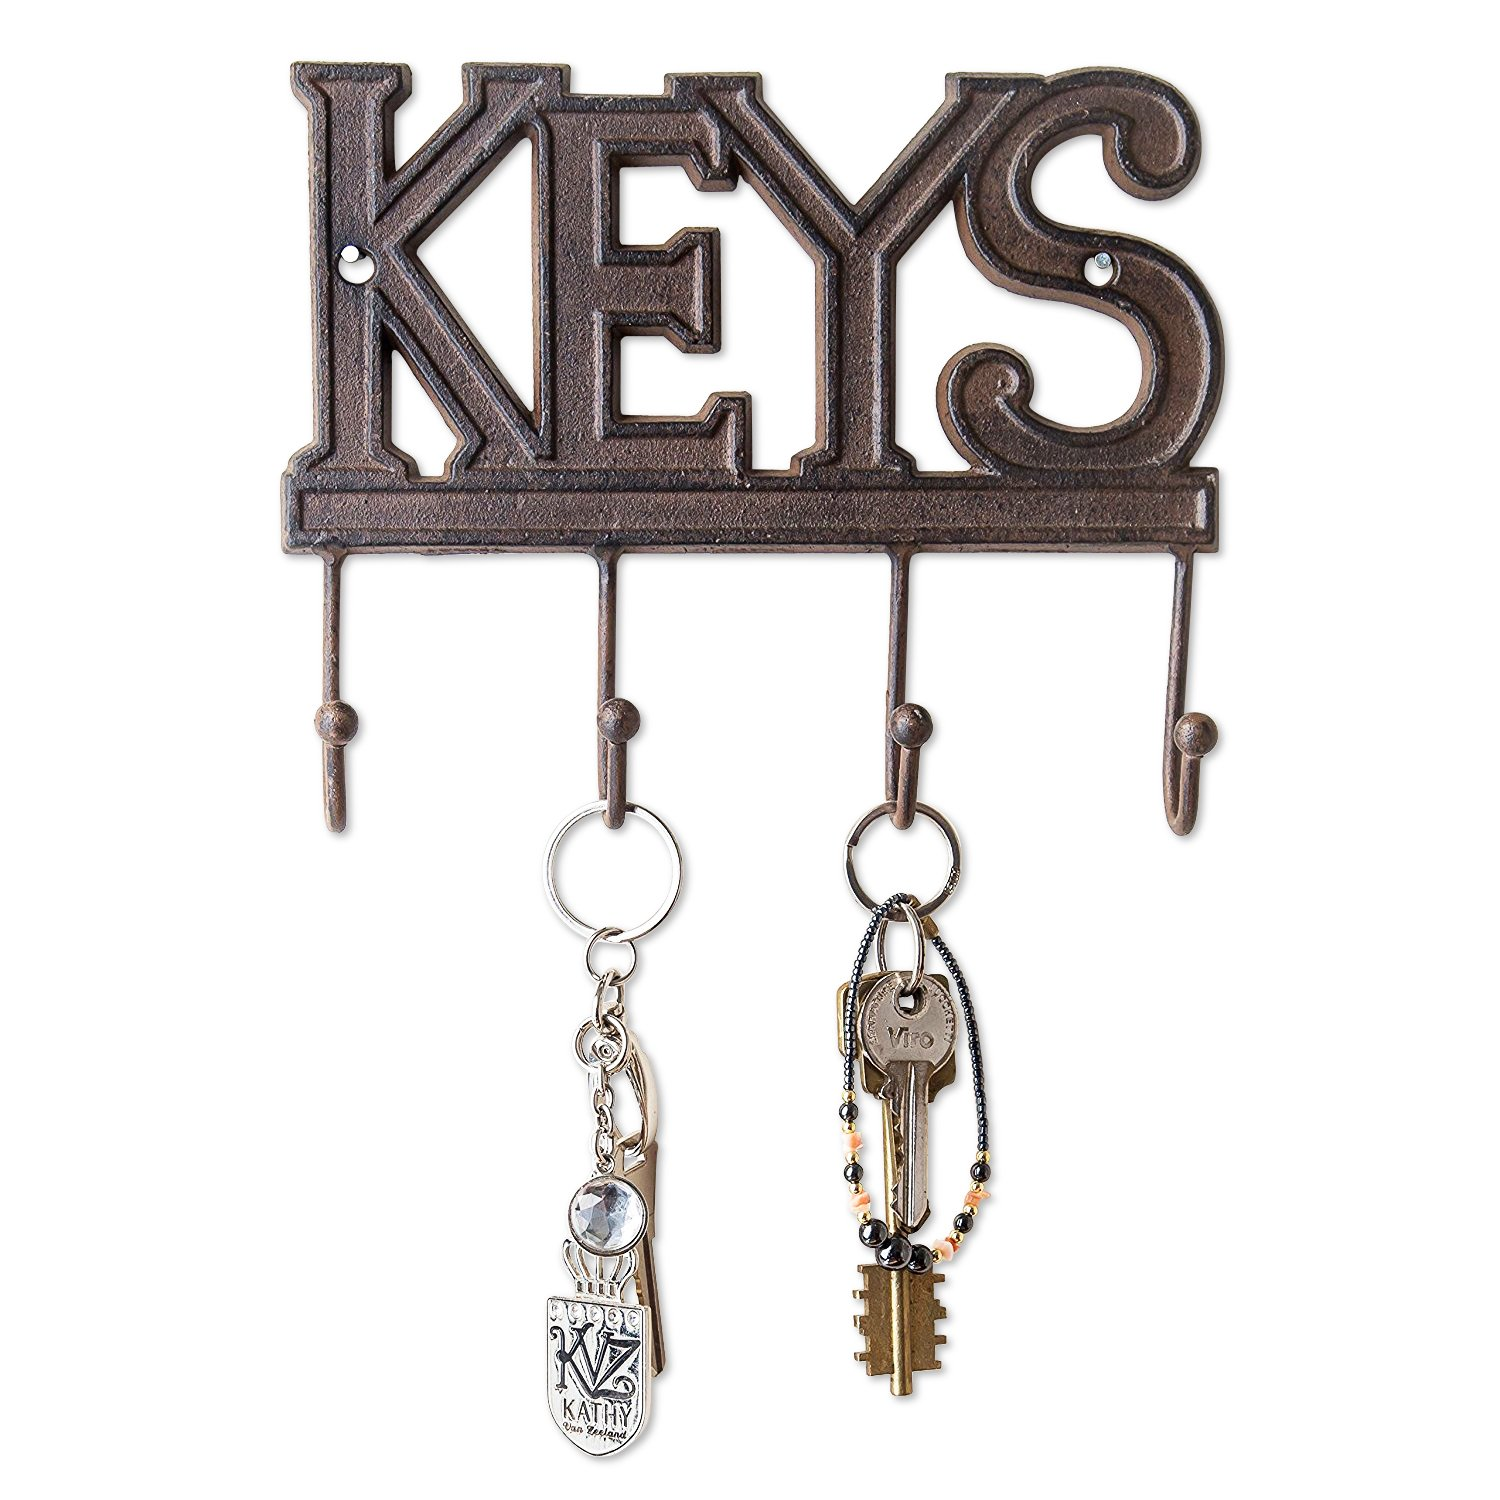 Comfify Key Holder - Keys - Wall Mounted Key Hook - Rustic Western Cast Iron Key Hanger - Decorative Key Organizer Rack with 4 Hooks - With Screws and Anchors - 6x8 inches - by (Rust Brown)